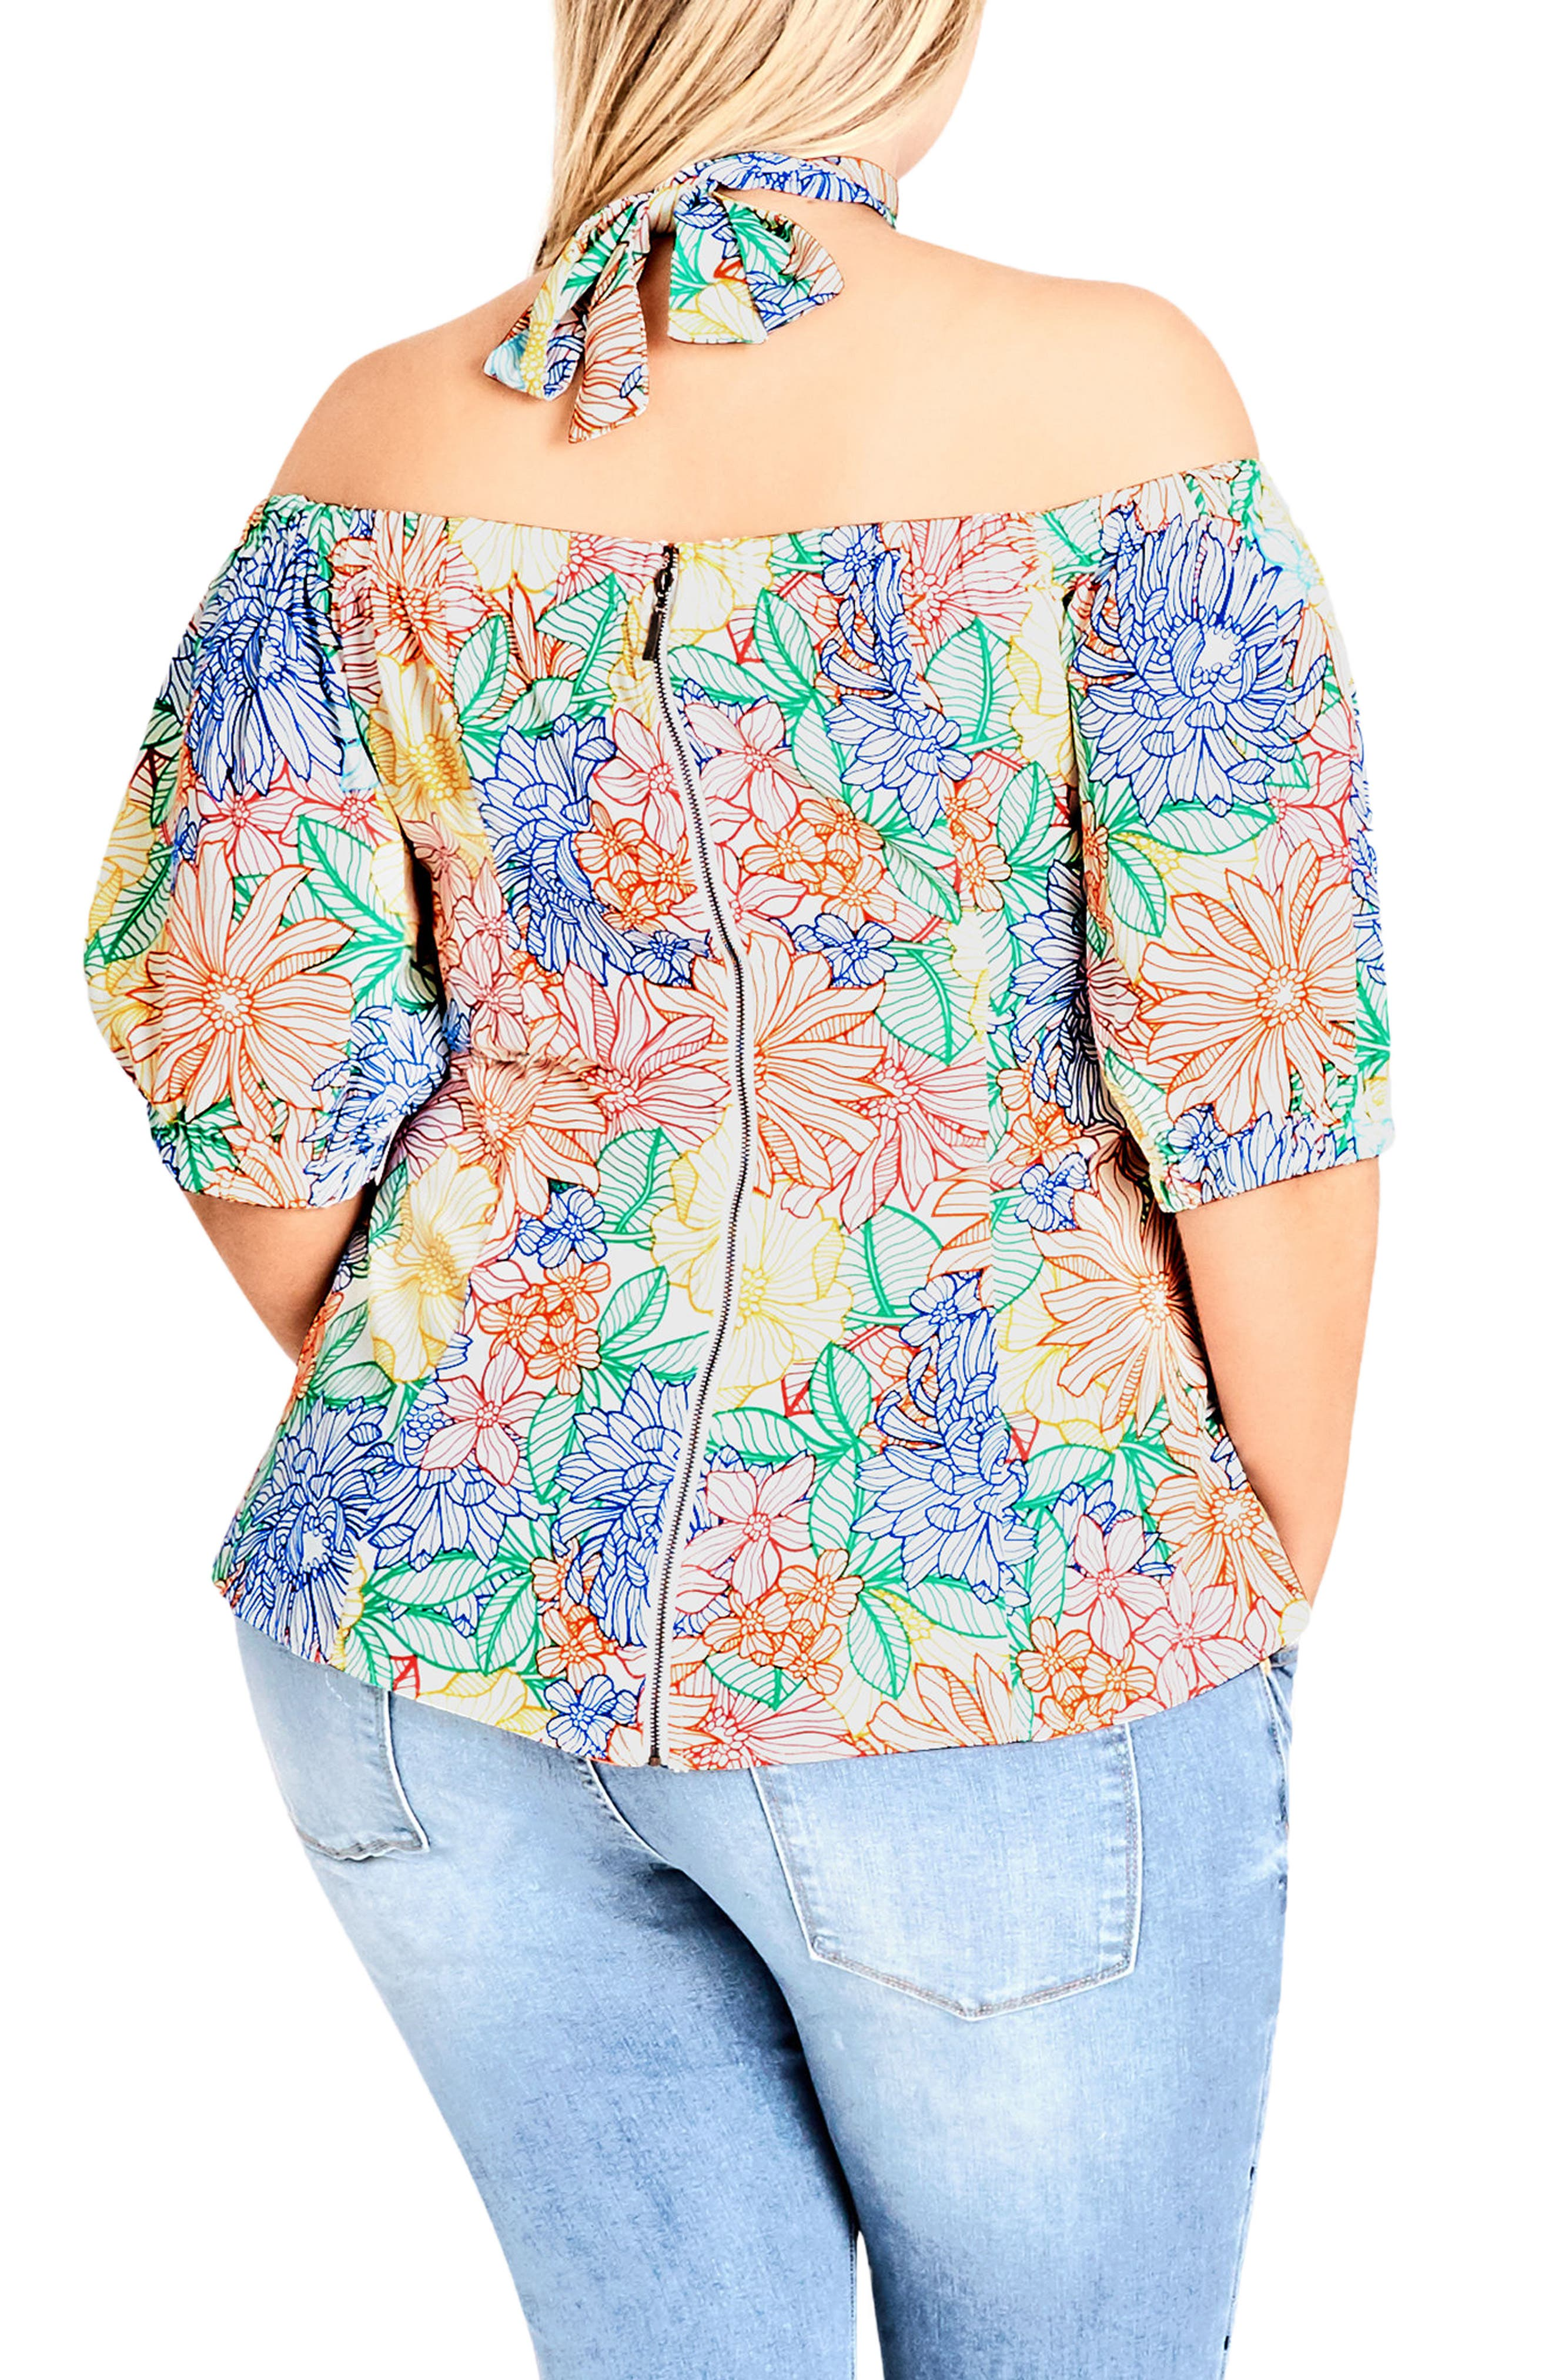 Etched Bloom Top with Choker,                             Alternate thumbnail 2, color,                             Etched Bloom